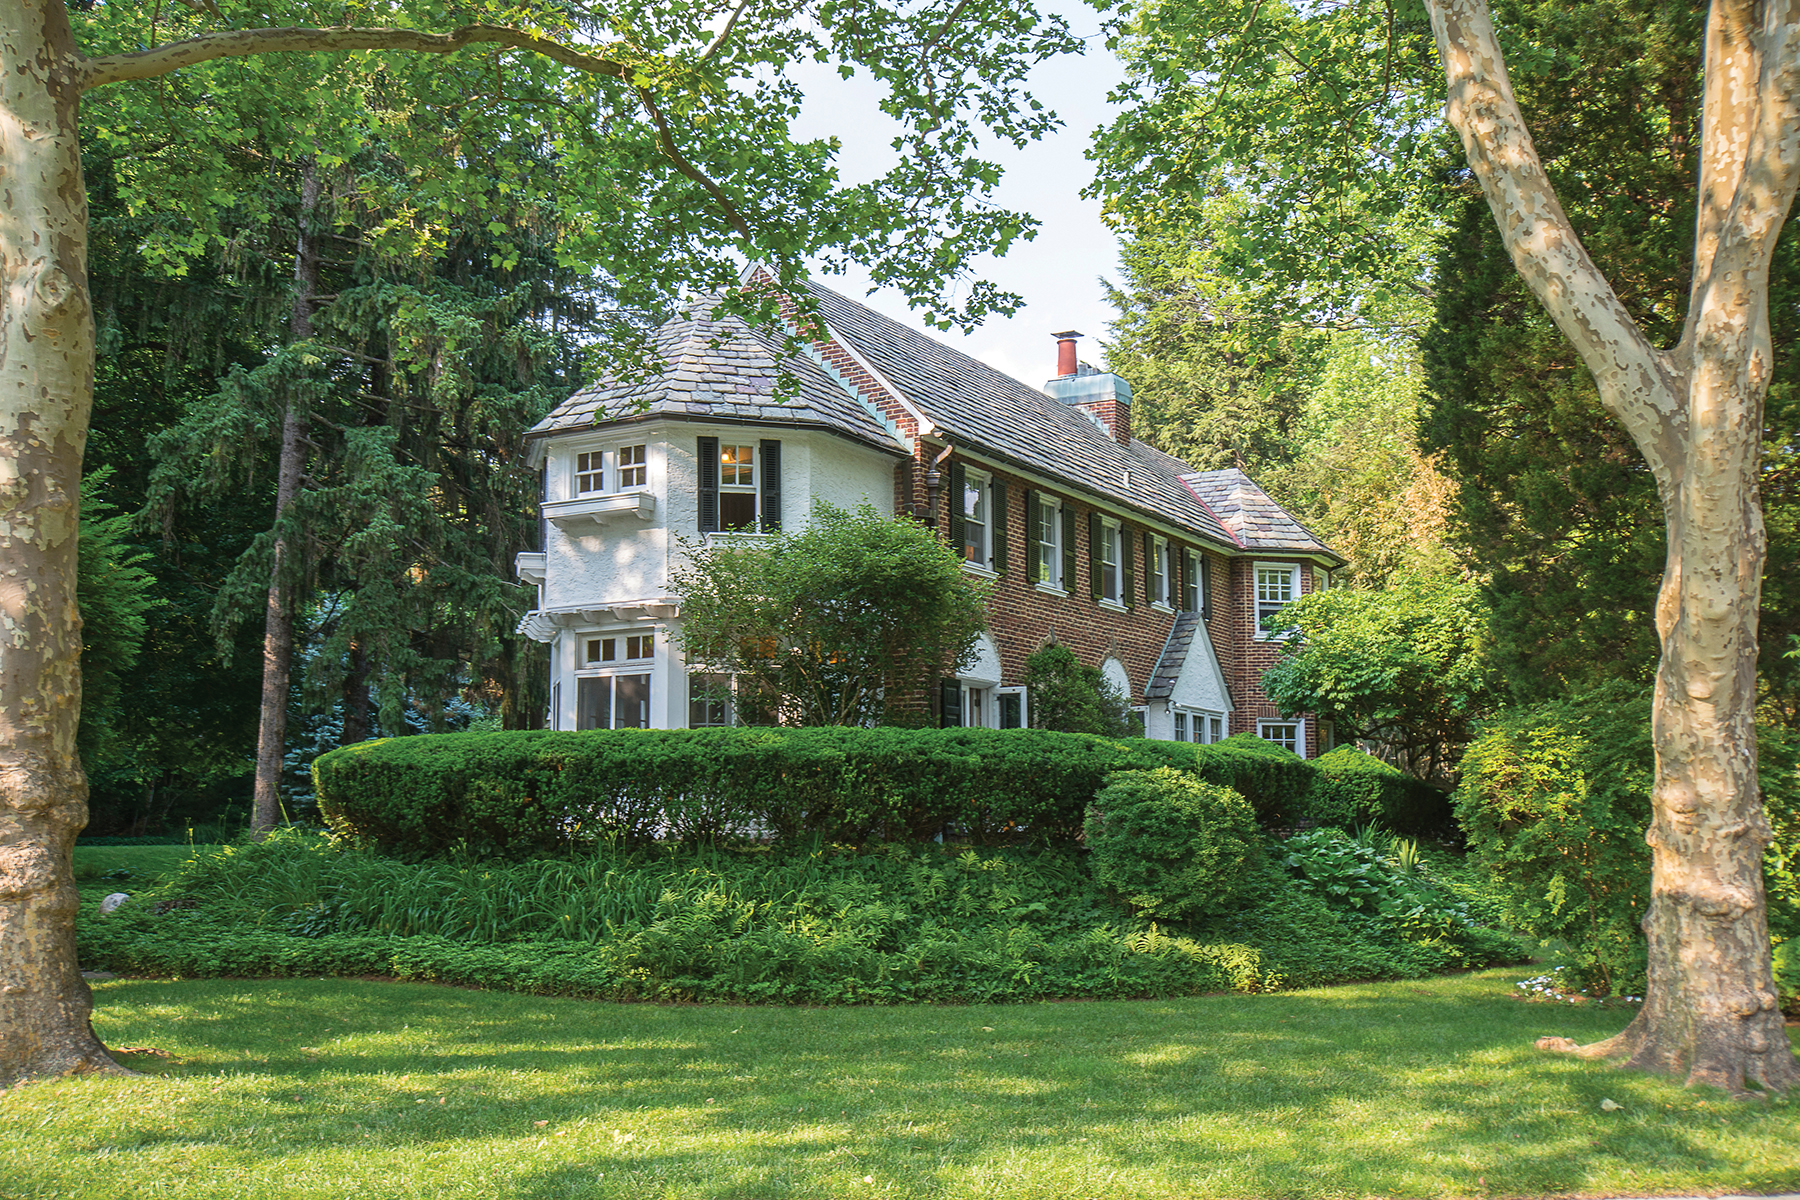 Single Family Home for Sale at Magnificient Bala Cynwyd Colonial 135 Rolling Road Bala Cynwyd, Pennsylvania, 19004 United States